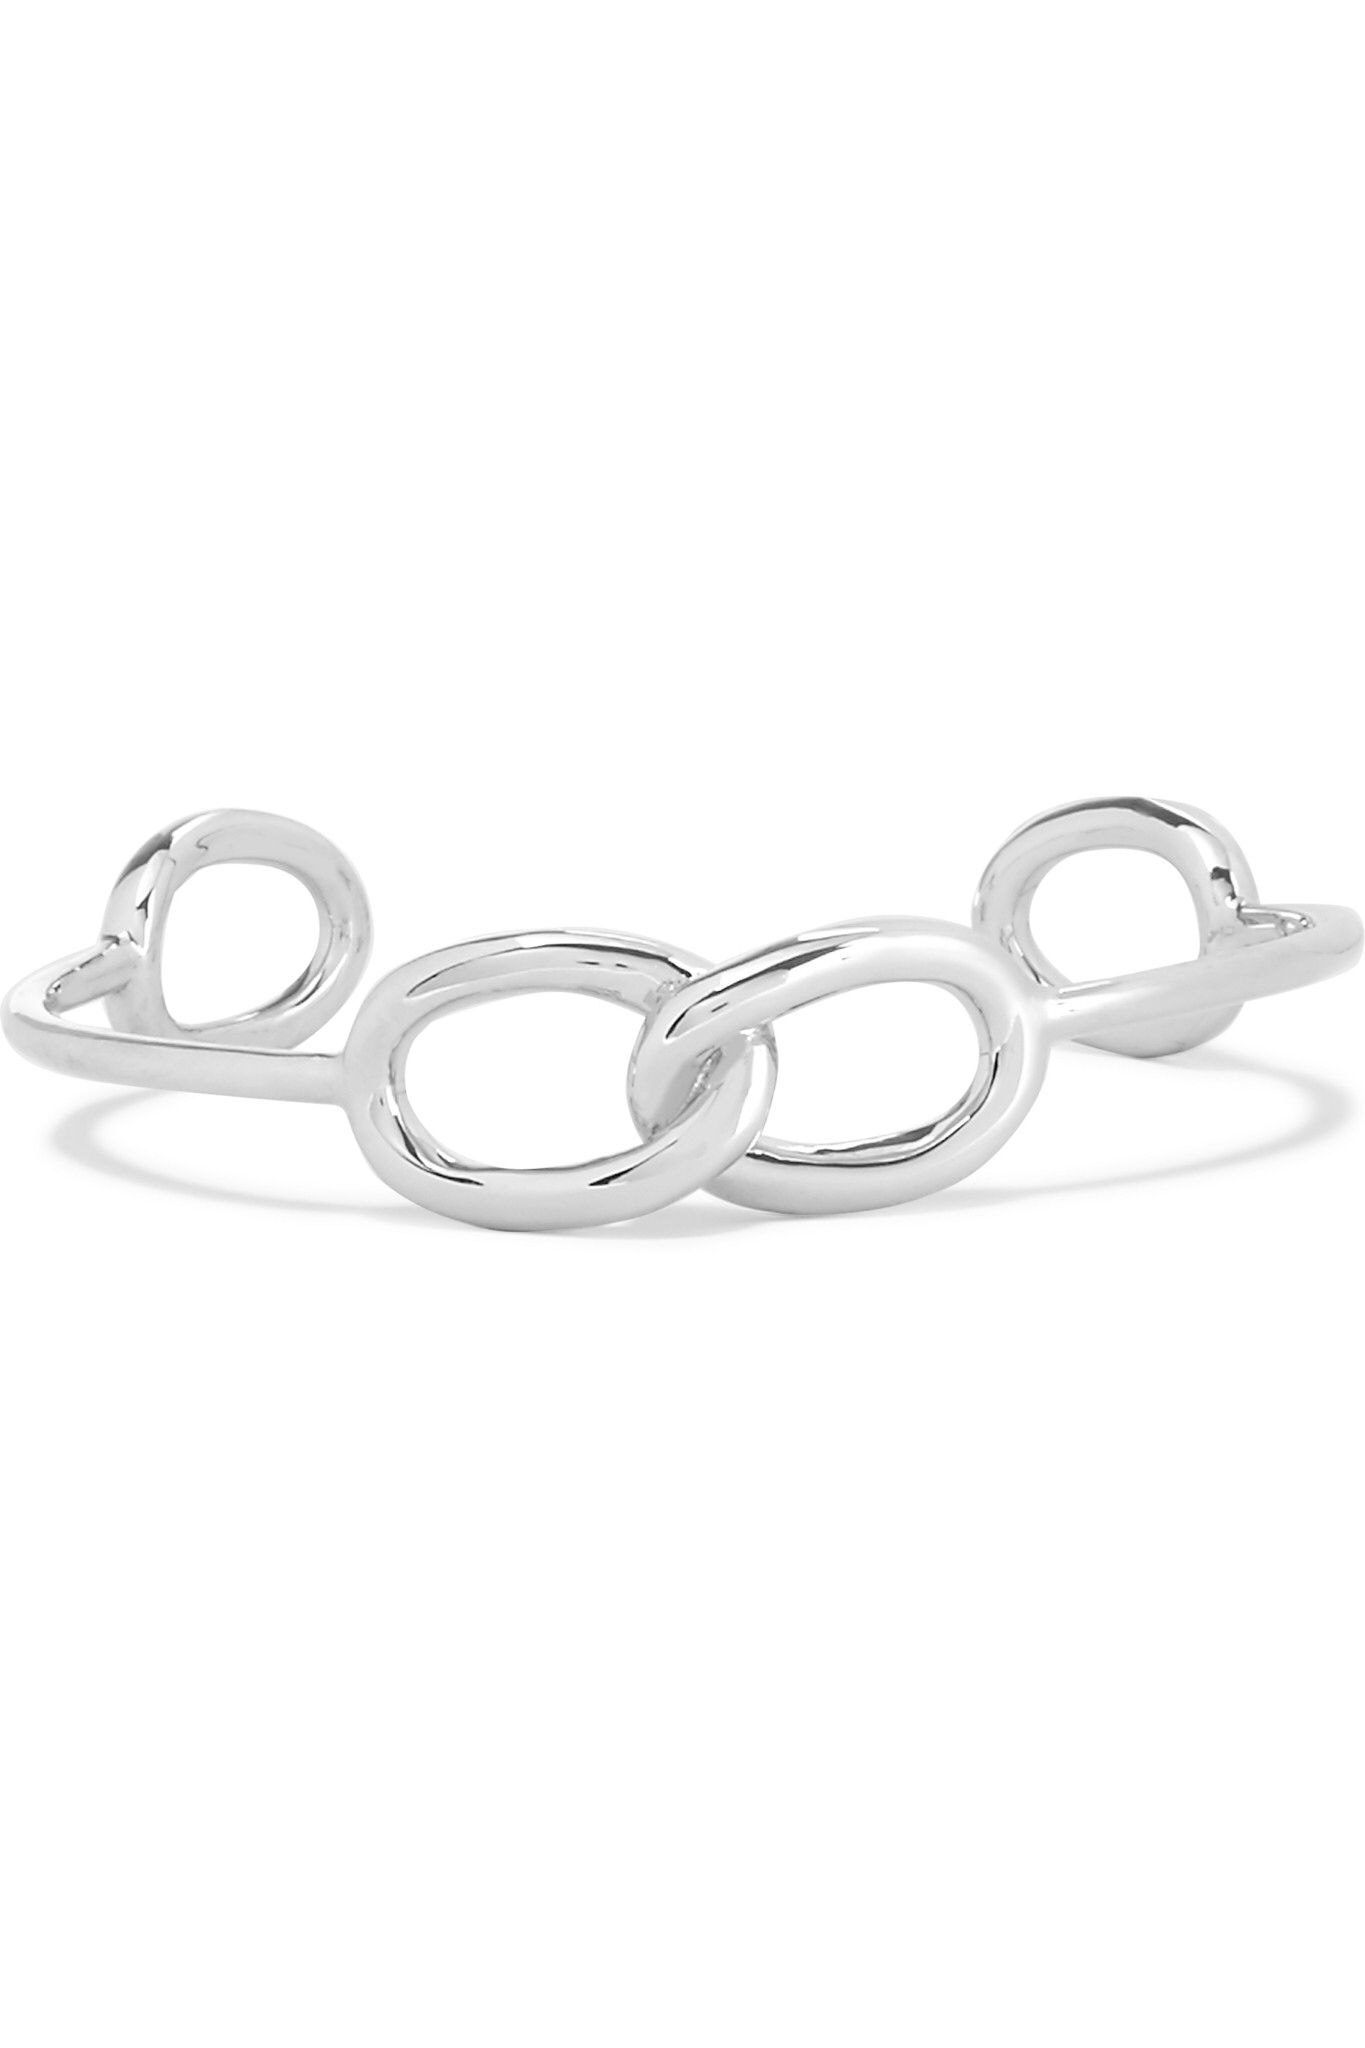 Jennifer Fisher Woman Chain Link Silver-plated Cuff Silver Size Jennifer Fisher Footlocker Pictures Cheap Online Latest Collections Cheap Price D6tMGELmWK